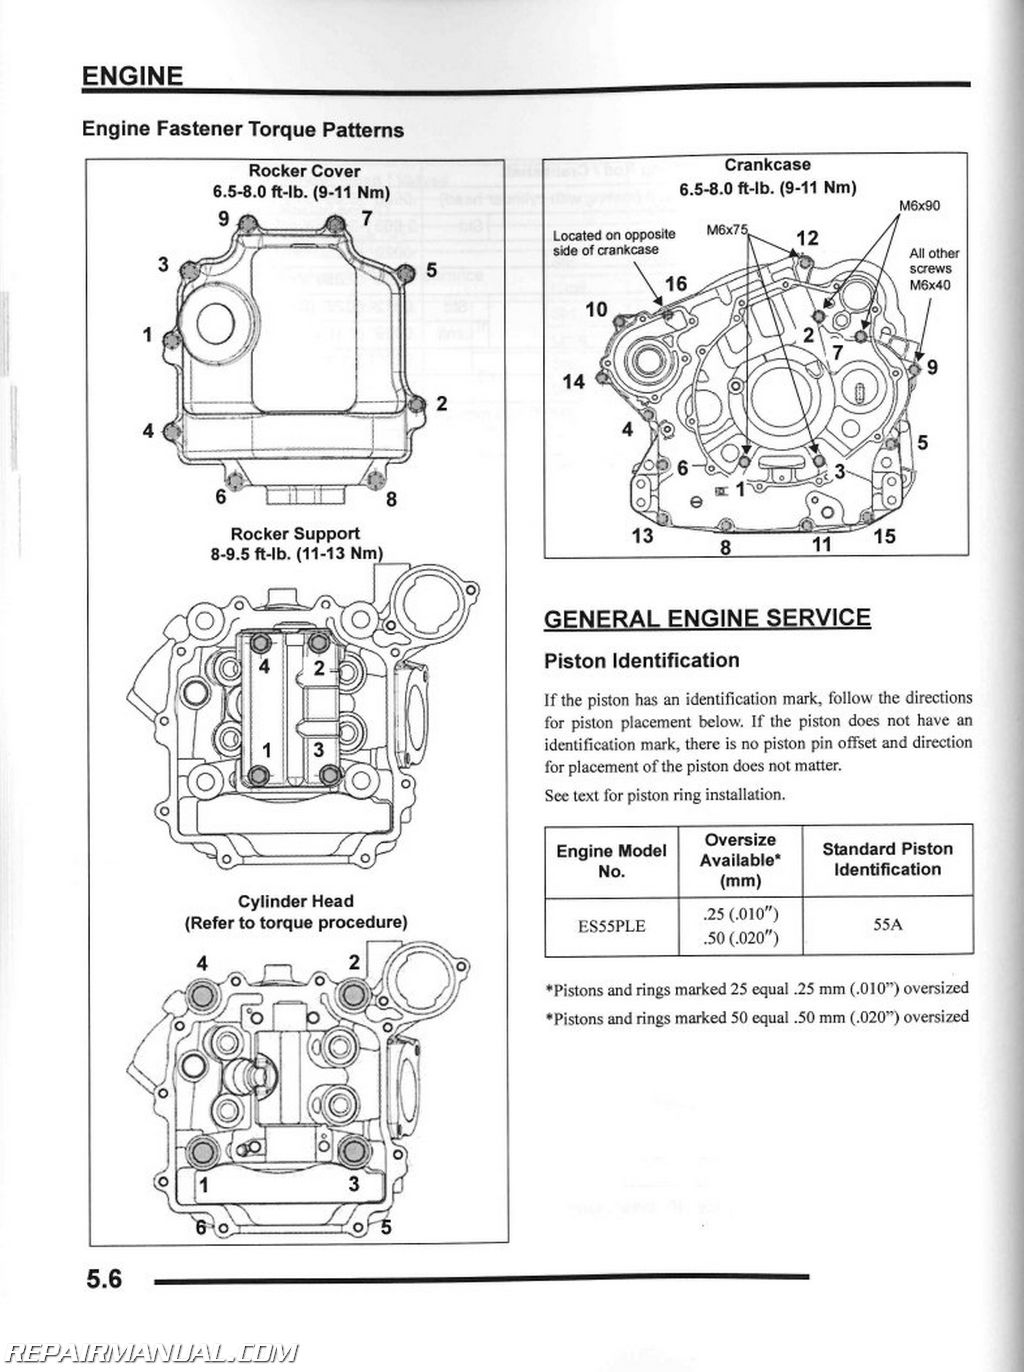 2010 polaris sportsman xp 550 atv service manual 2009 Polaris RZR 800 Wiring  Diagram 2009 Polaris RZR 800 Wiring Diagram